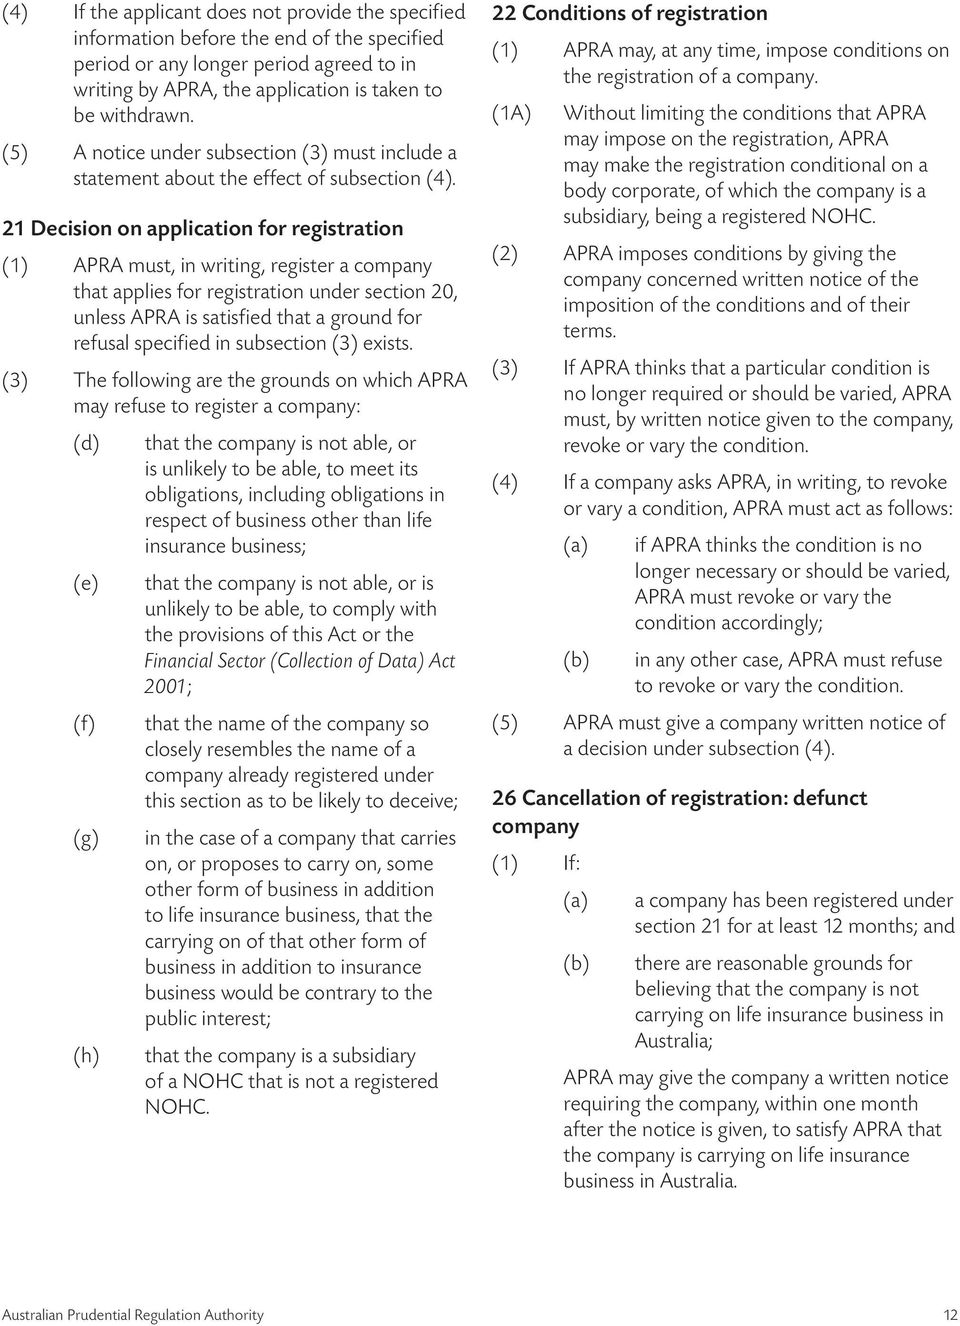 21 Decision on application for registration (1) APRA must, in writing, register a company that applies for registration under section 20, unless APRA is satisfied that a ground for refusal specified